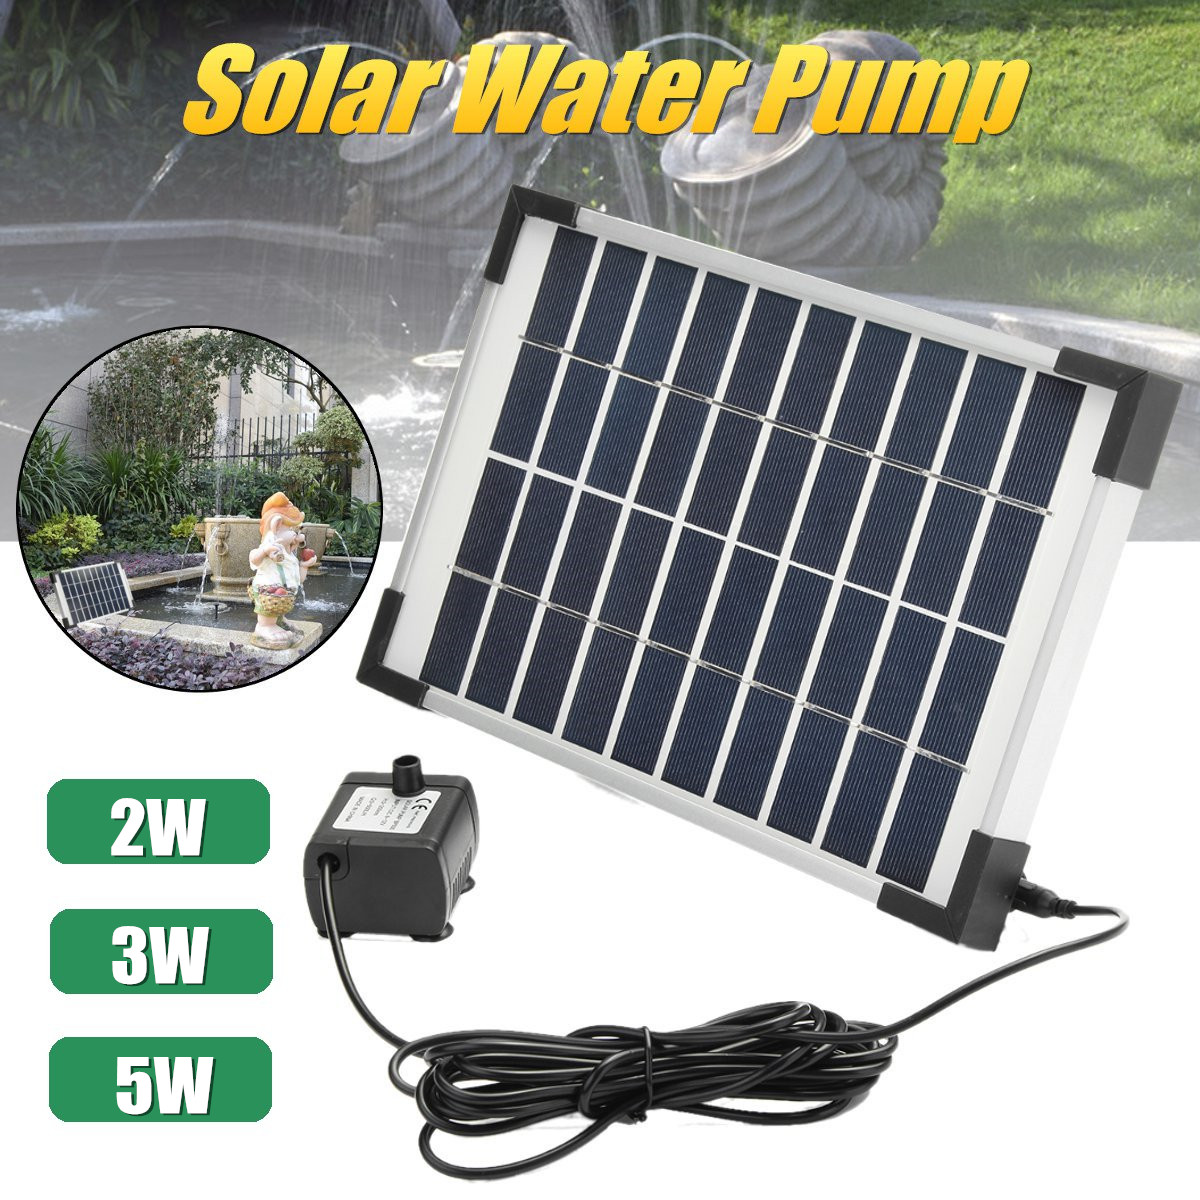 2019 New Style Solar Water Pump Power Panel Kit Garden Plants Watering Power Fountain Pool Submersible Fountain Pond Garden Outdoor Decor An Enriches And Nutrient For The Liver And Kidney